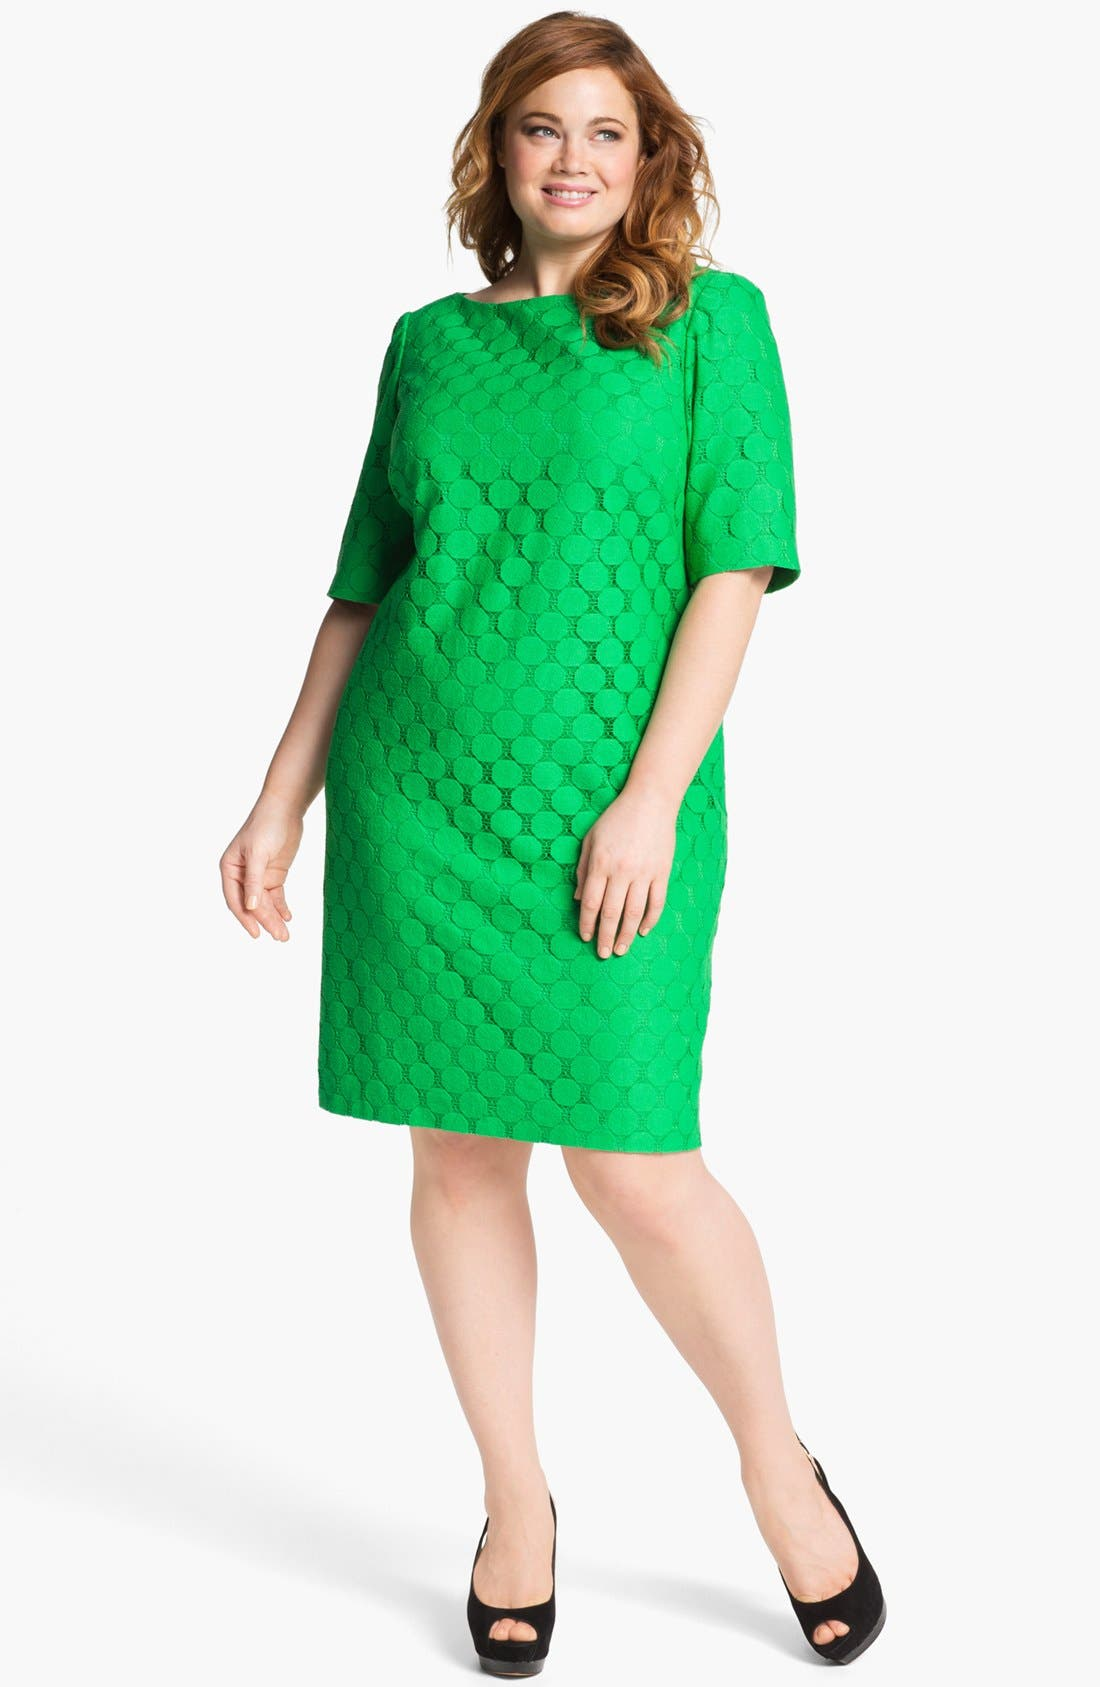 Alternate Image 1 Selected - Adrianna Papell Lace Shift Dress (Plus Size)